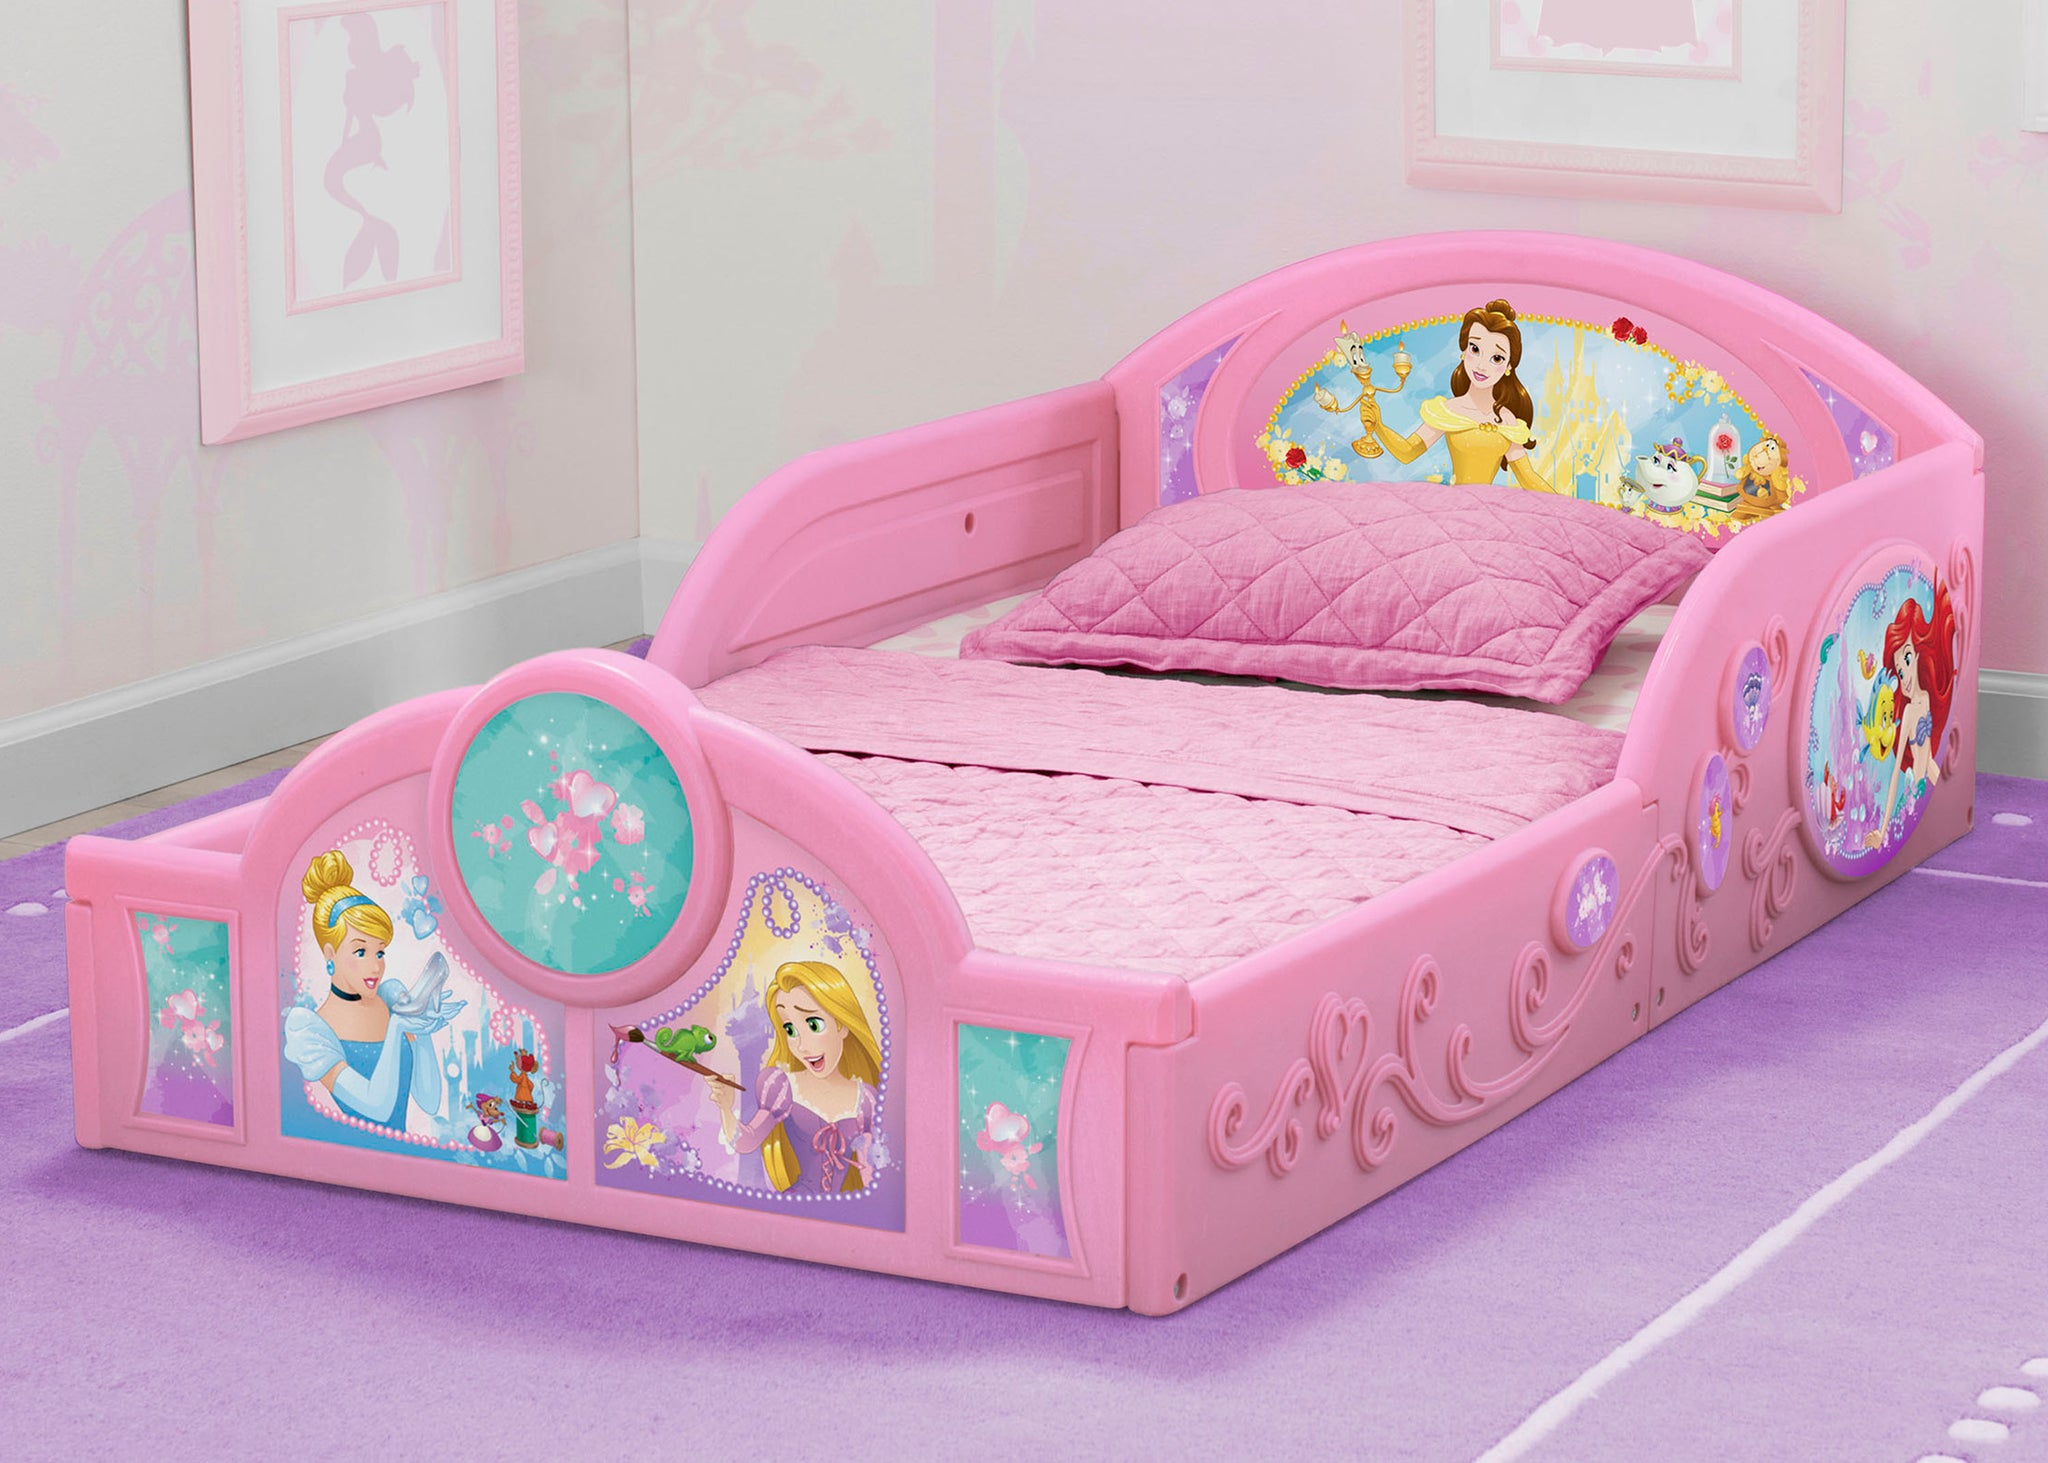 Delta Children Princess Plastic Sleep and Play Toddler Bed, Hangtag View